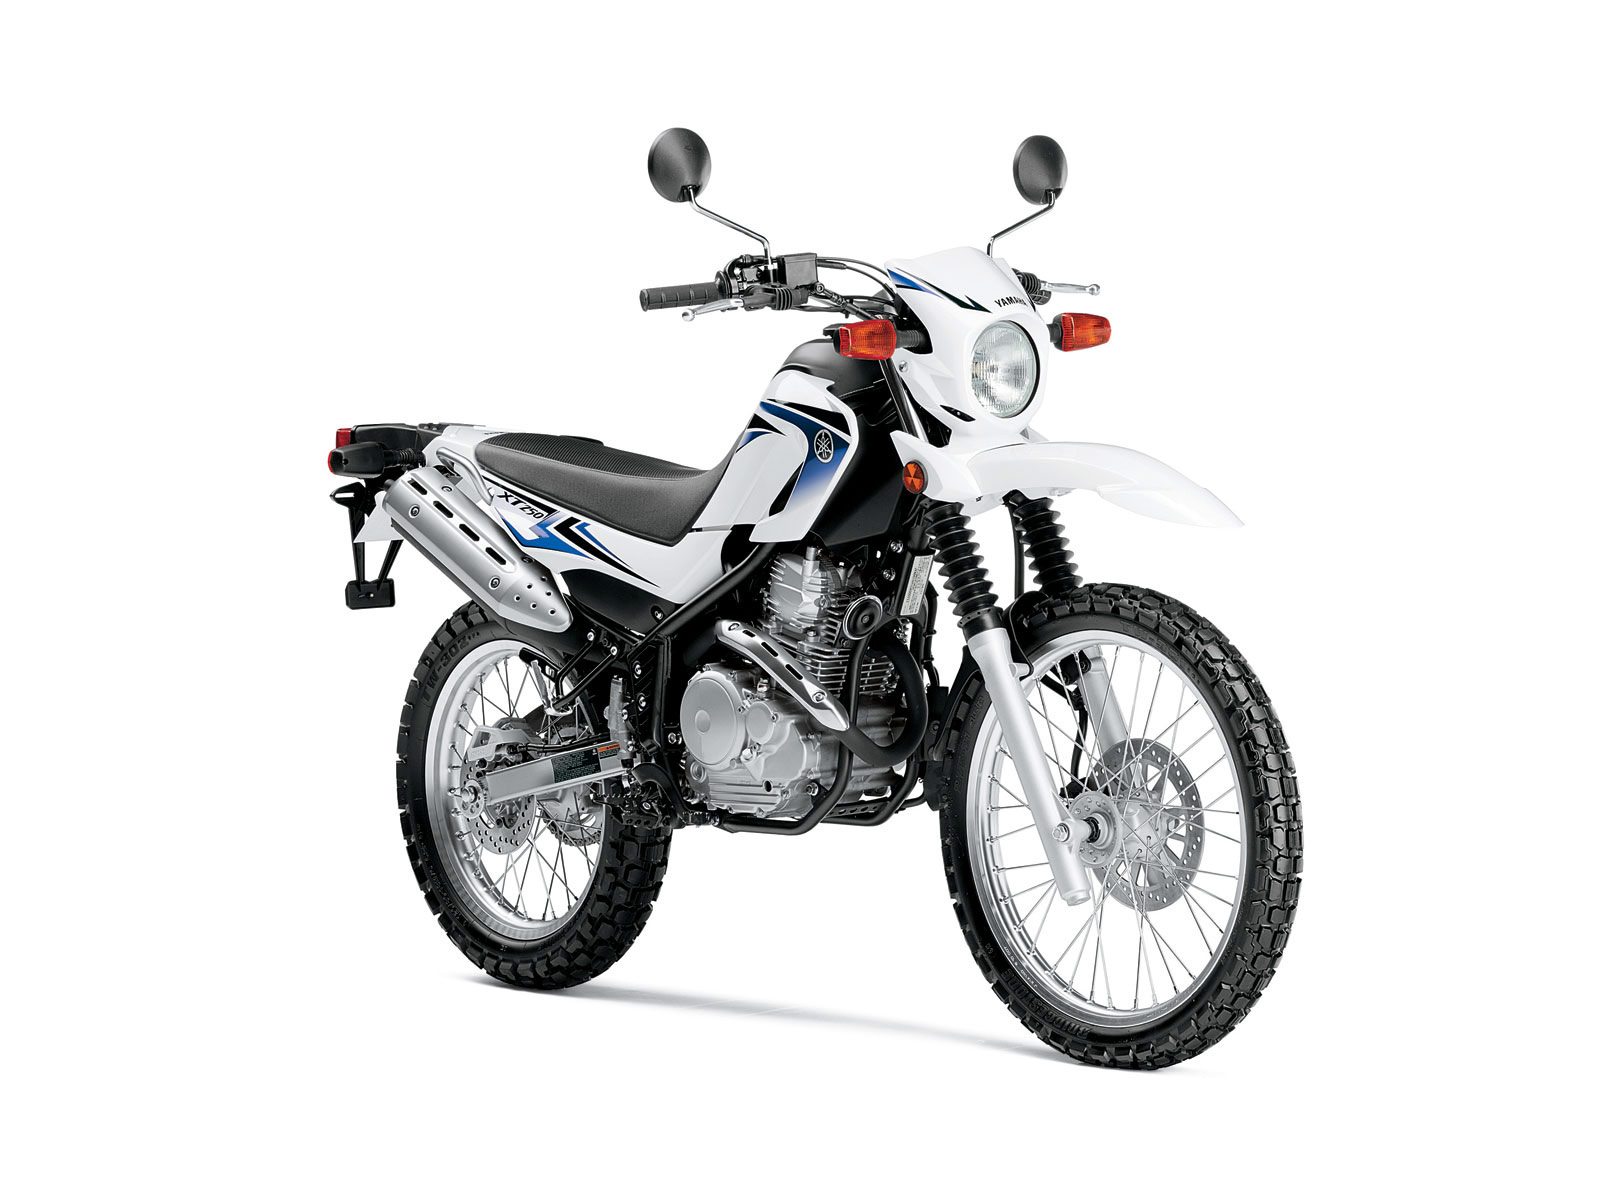 2012 YAMAHA XT250 Motorcycle Insurance Information